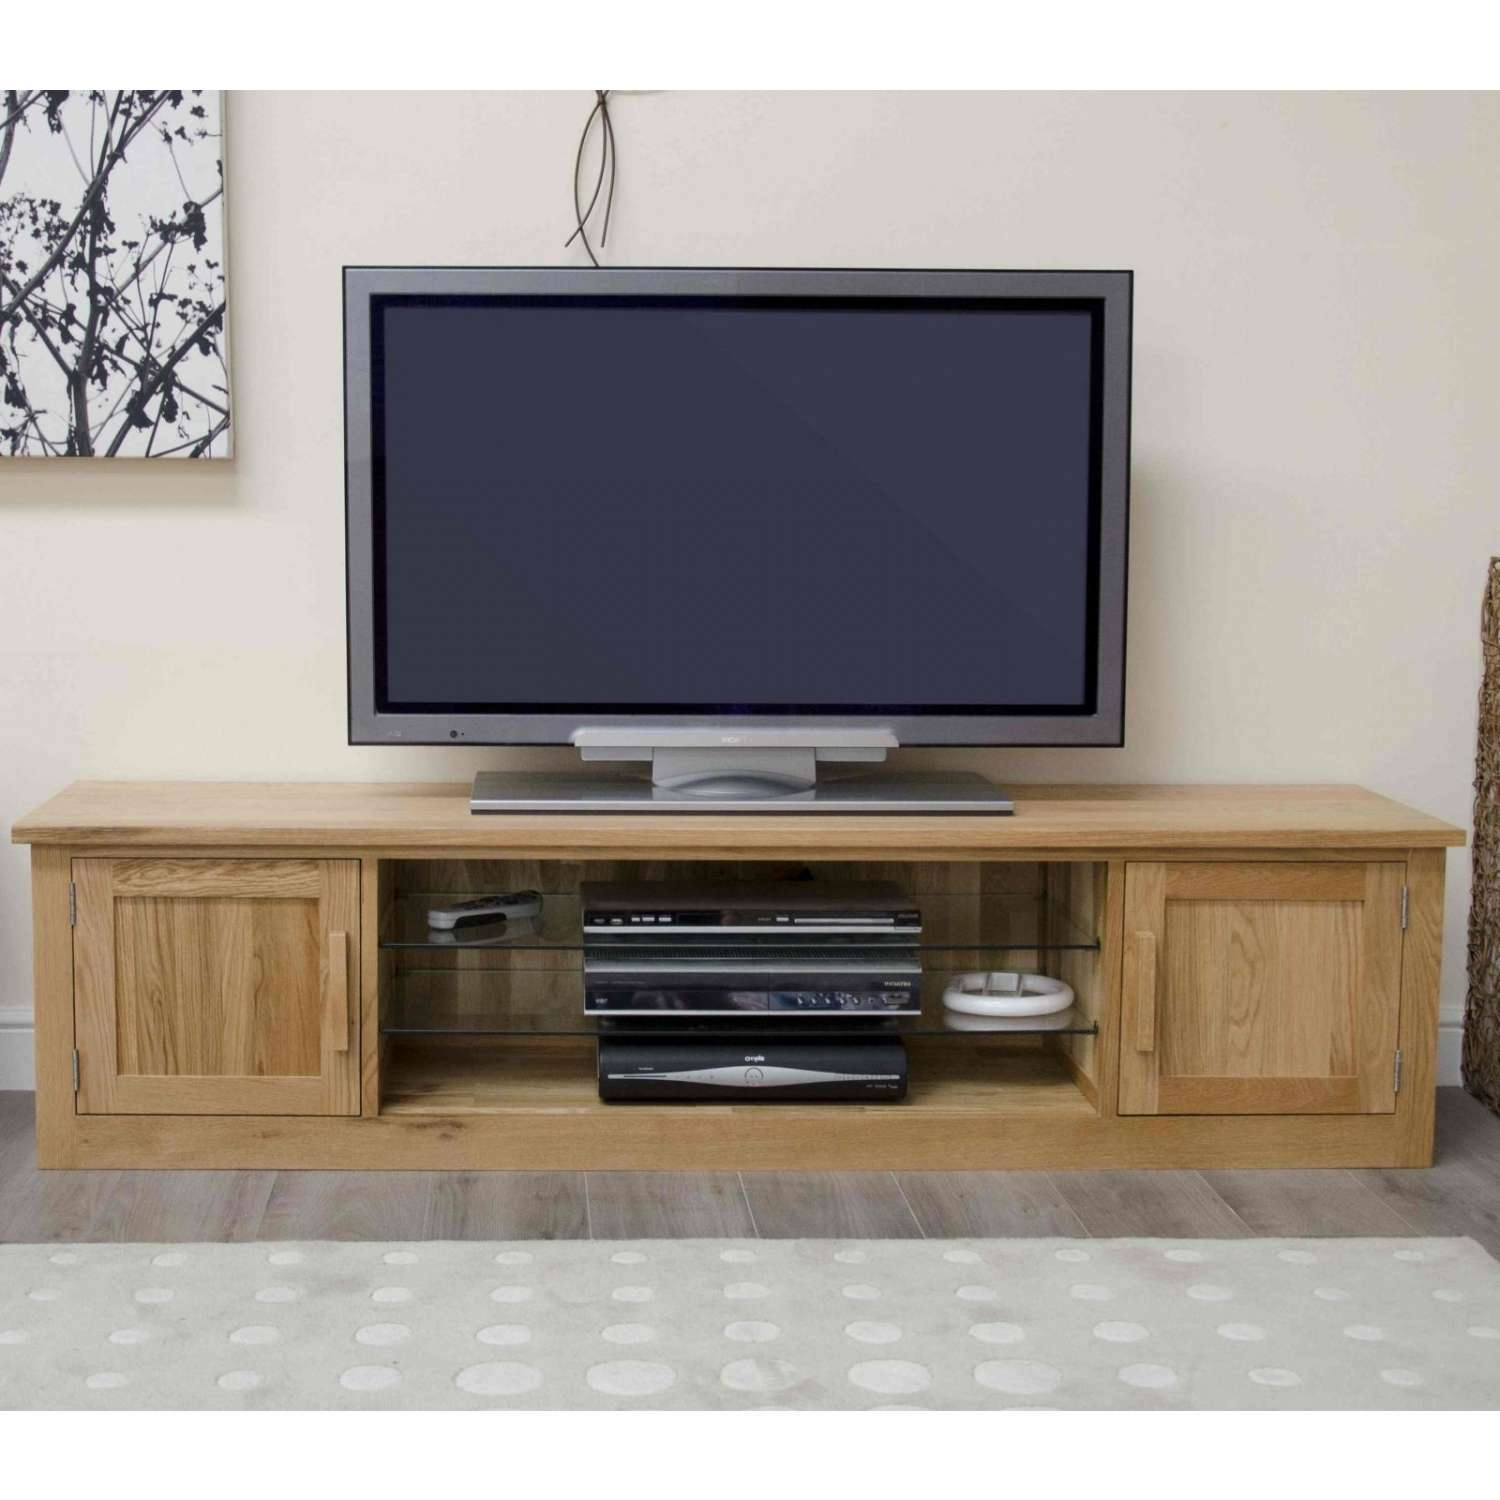 Arden Solid Oak Living Room Furniture Large Widescreen Tv Cabinet With Regard To Large Oak Tv Stands (View 2 of 15)